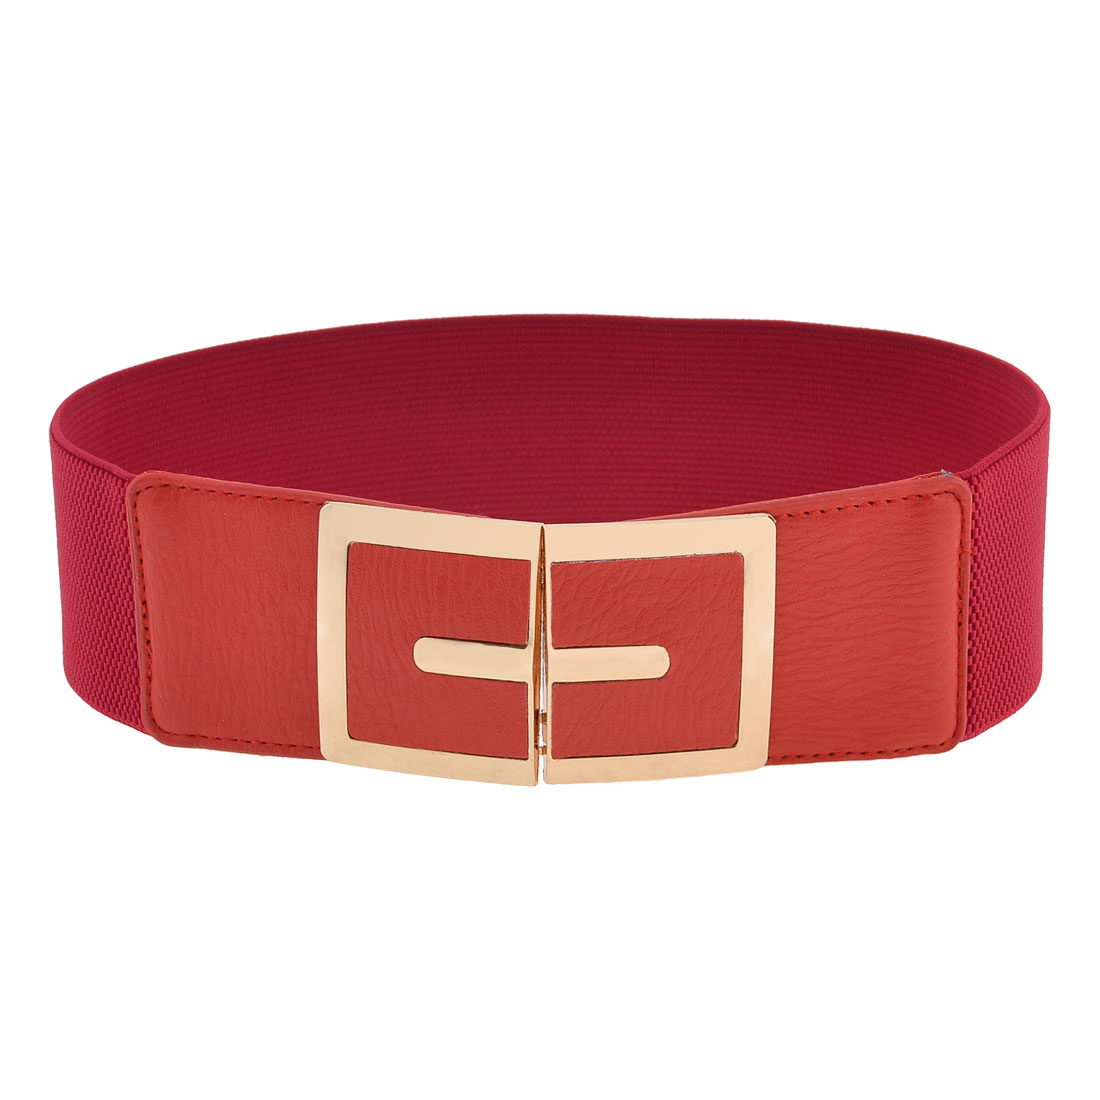 Woman Red Faux Leather Front Gold Tone Metal Interlock Buckle Elastic Waist Belt